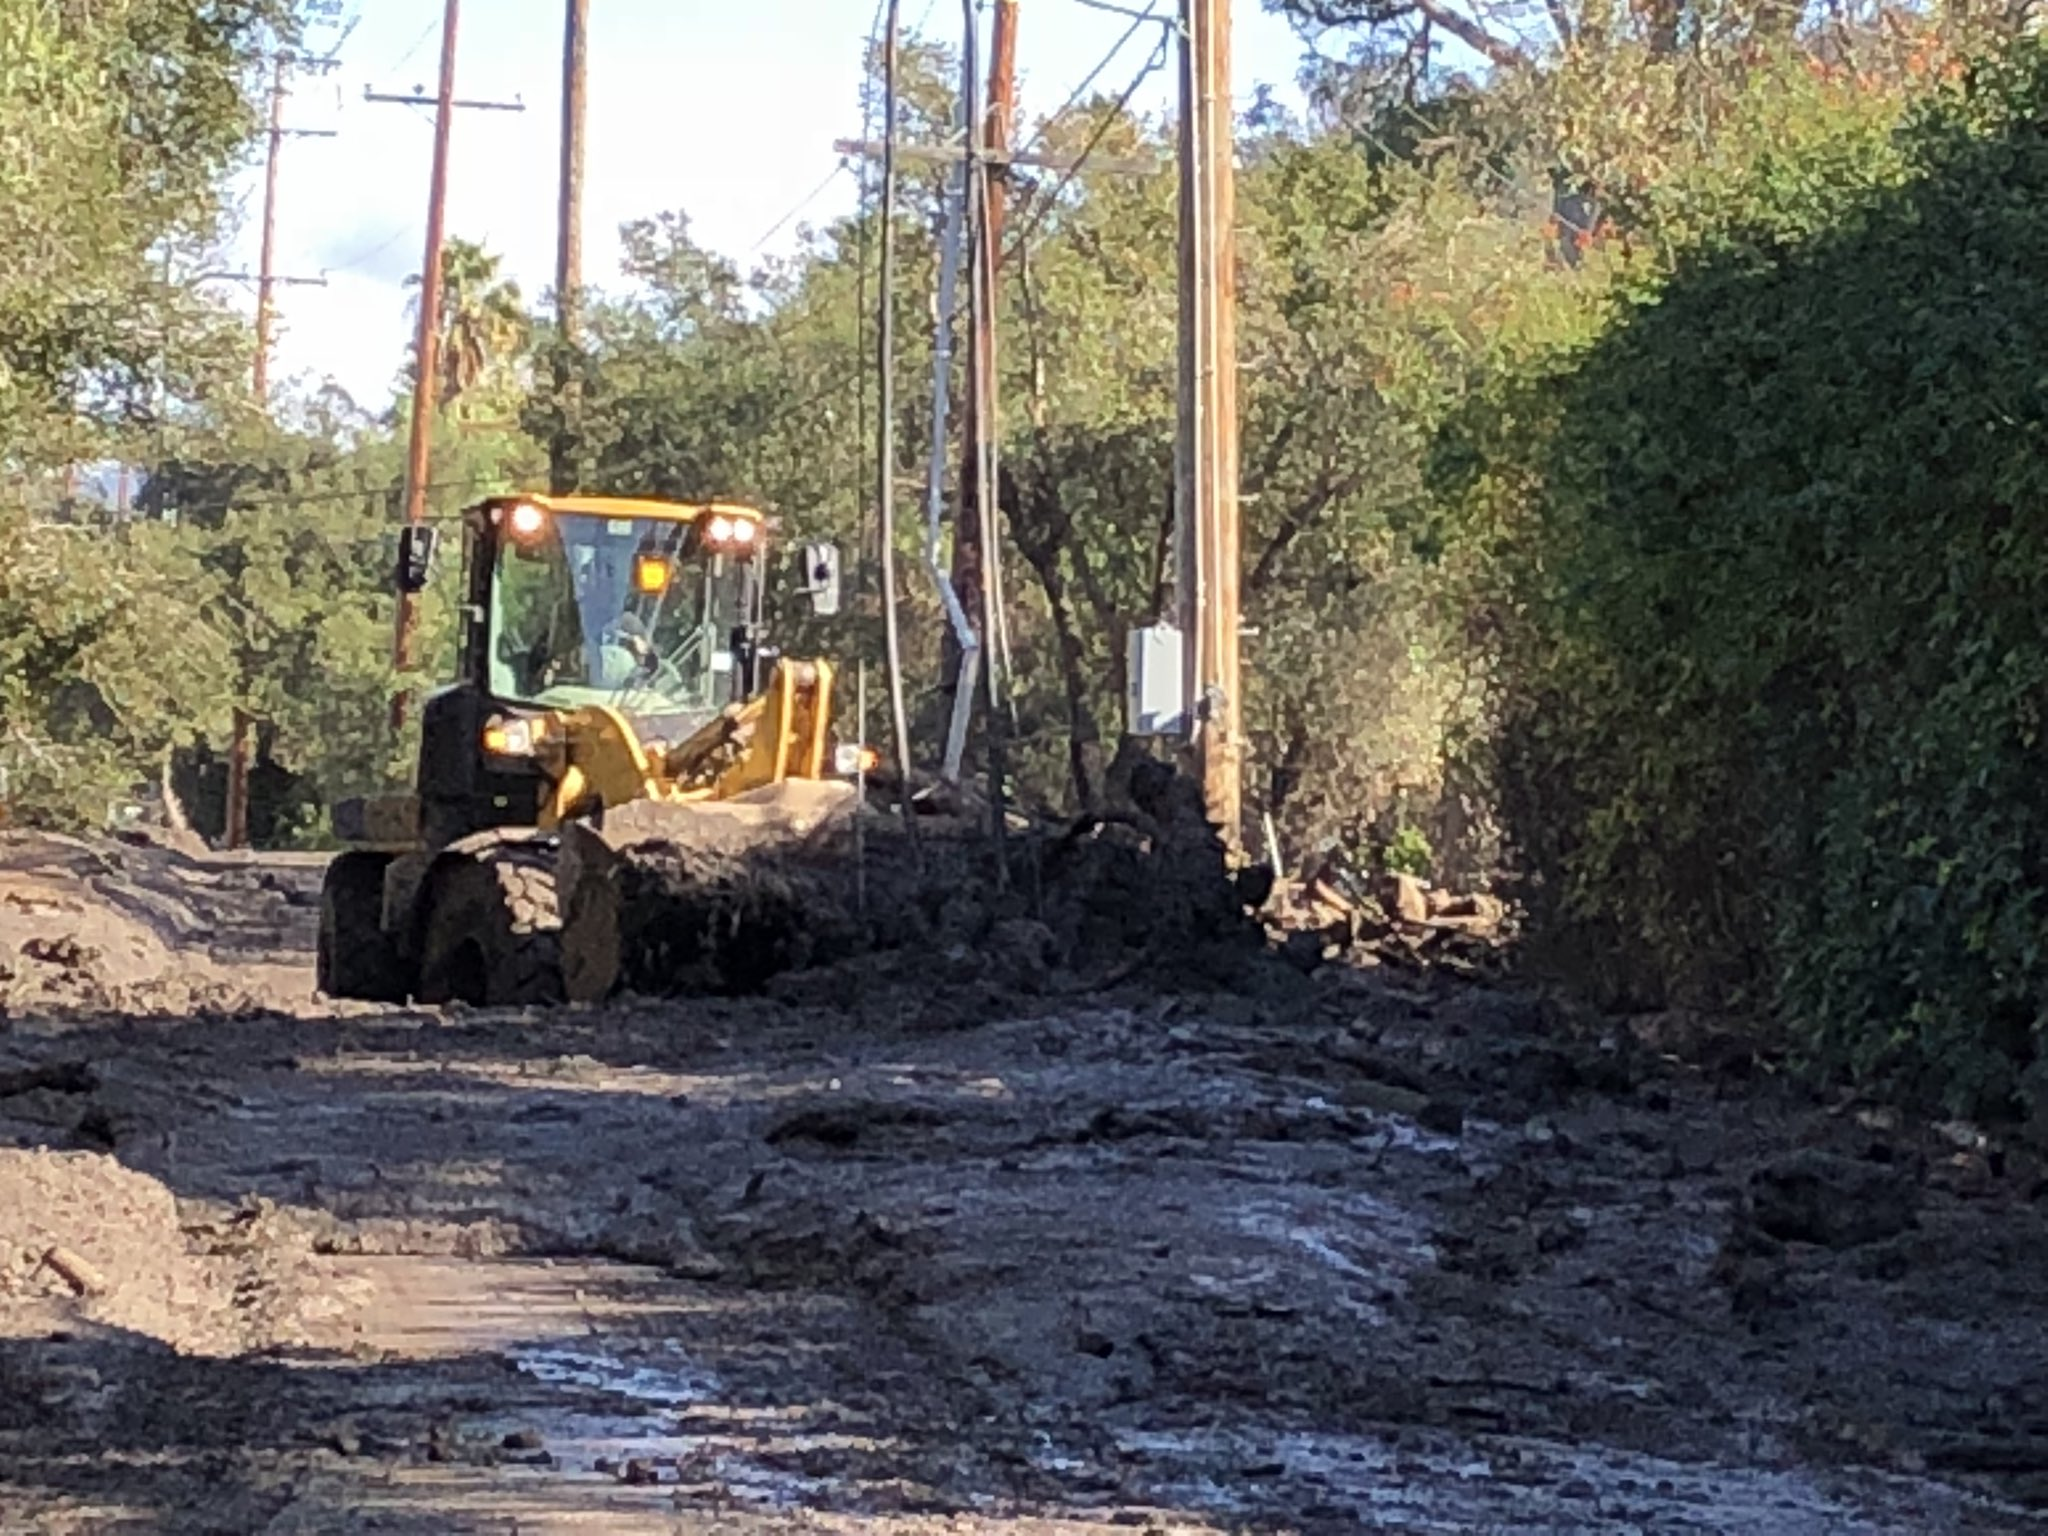 Large amounts of mud and debris are cleared from East Valley Road in Montecito. (Photo & Caption: Mike Eliason, Santa Barbara County Fire Dept.)